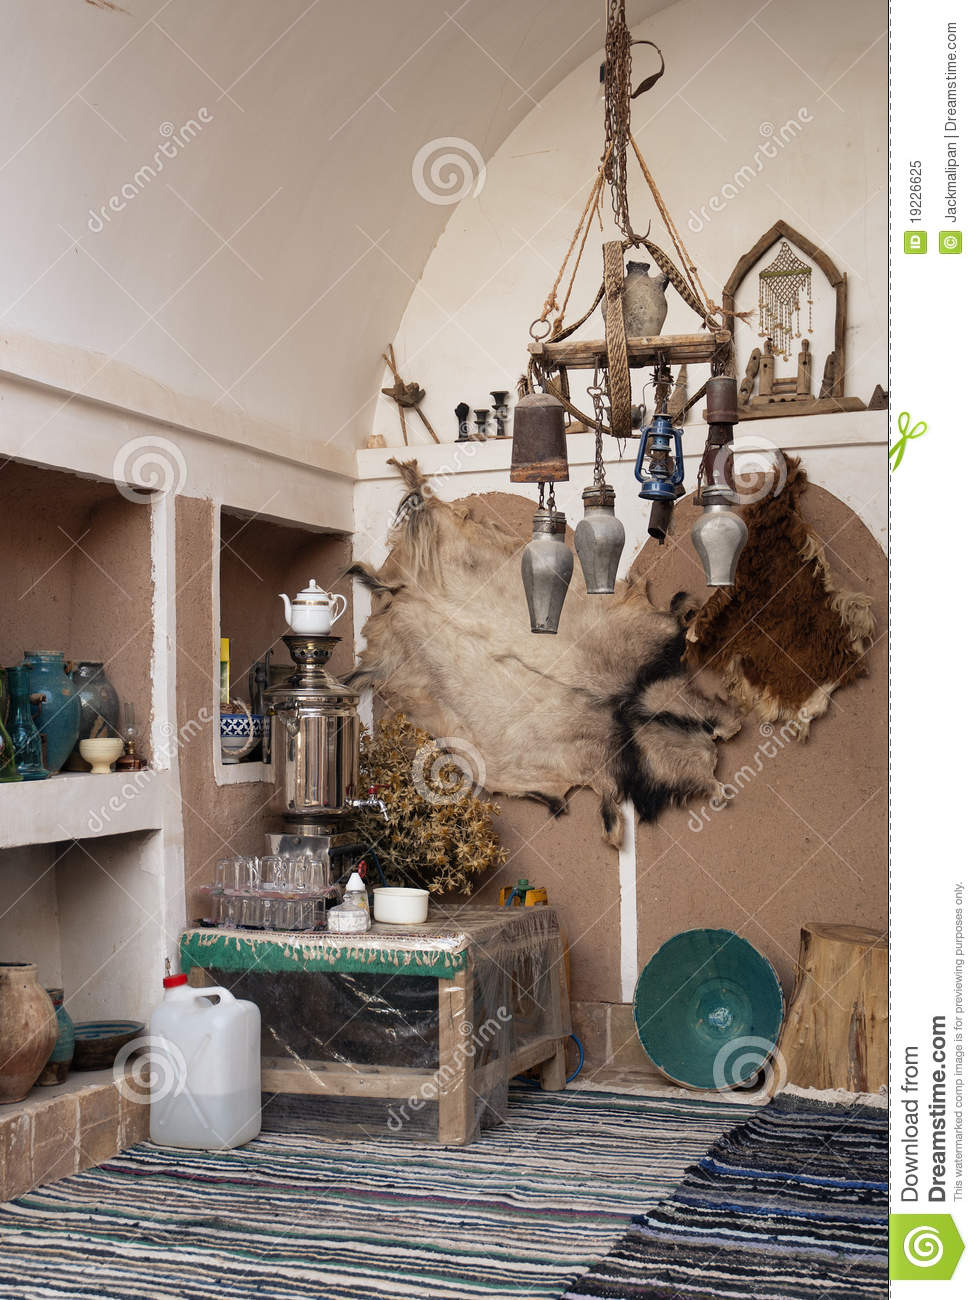 Home interior traditional decoration in yazd iran stock image image 19226625 for Photo decoration